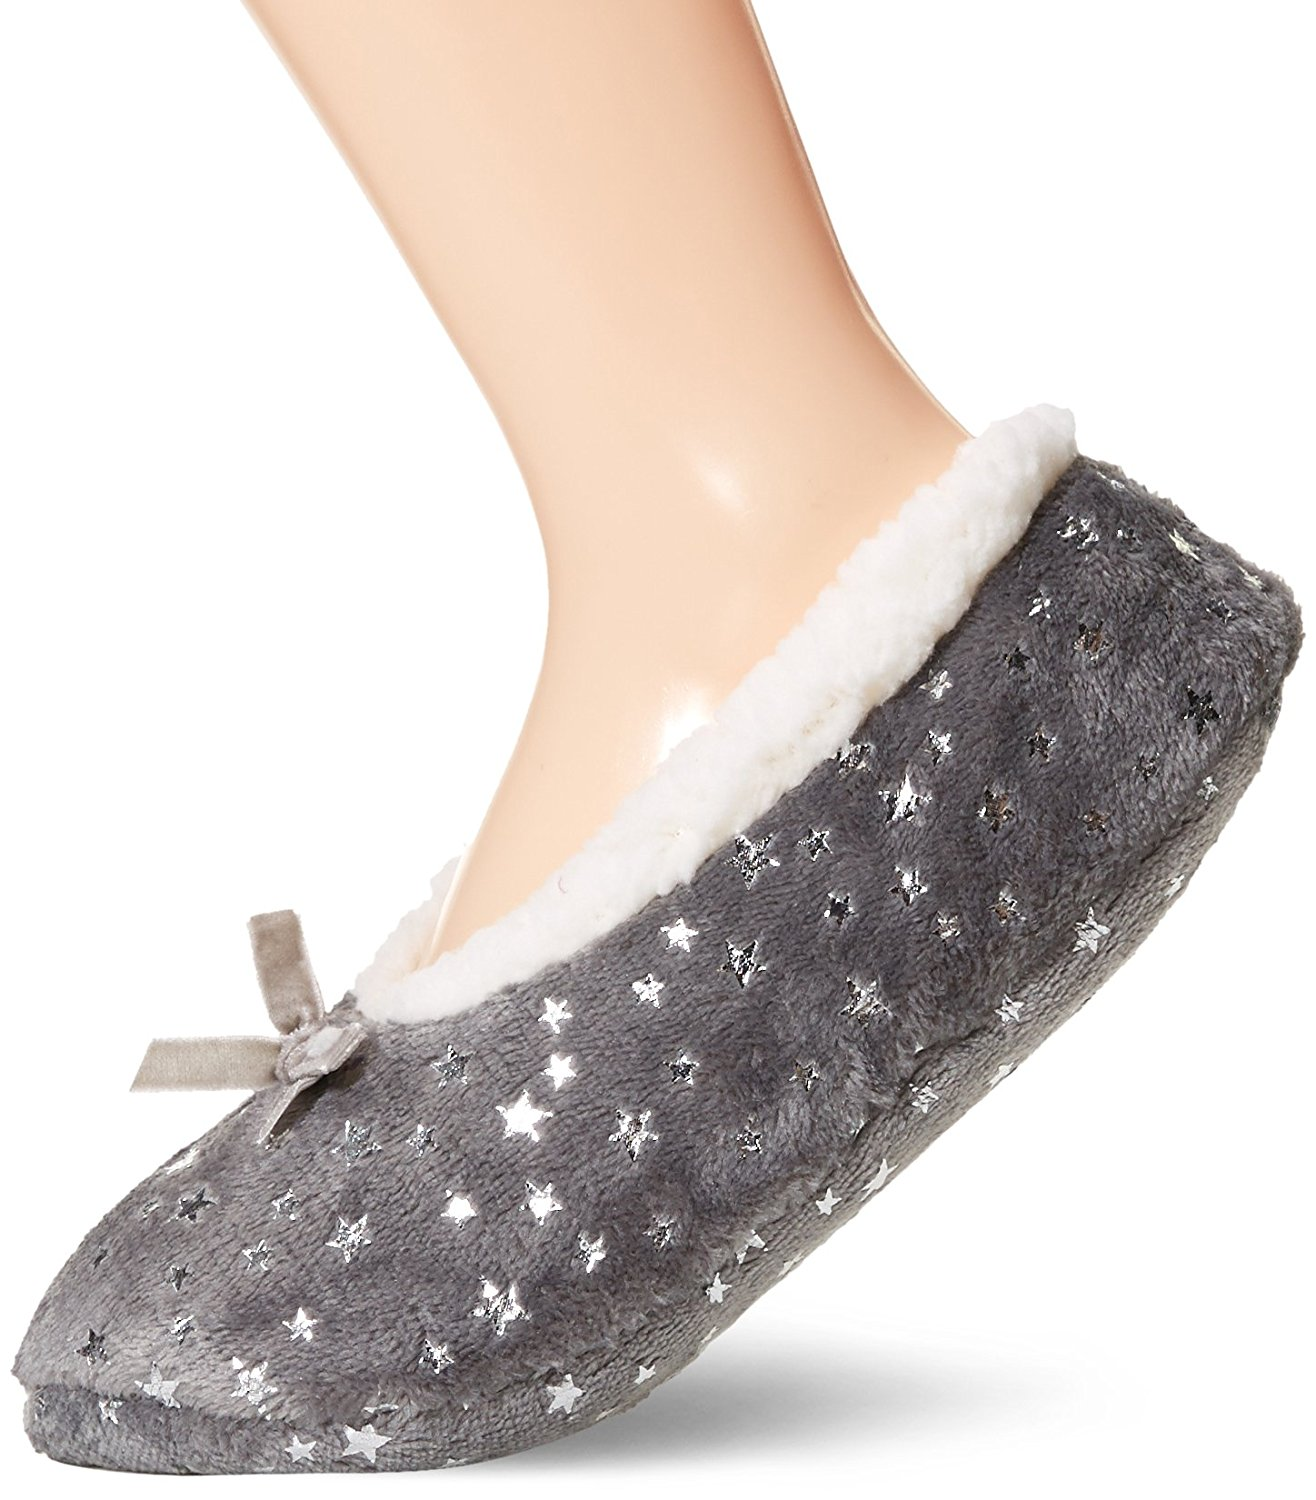 Toes in A Blanket Women's Ladies indoor slipper socks with bowtie and shinny prints S/M Dark Grey